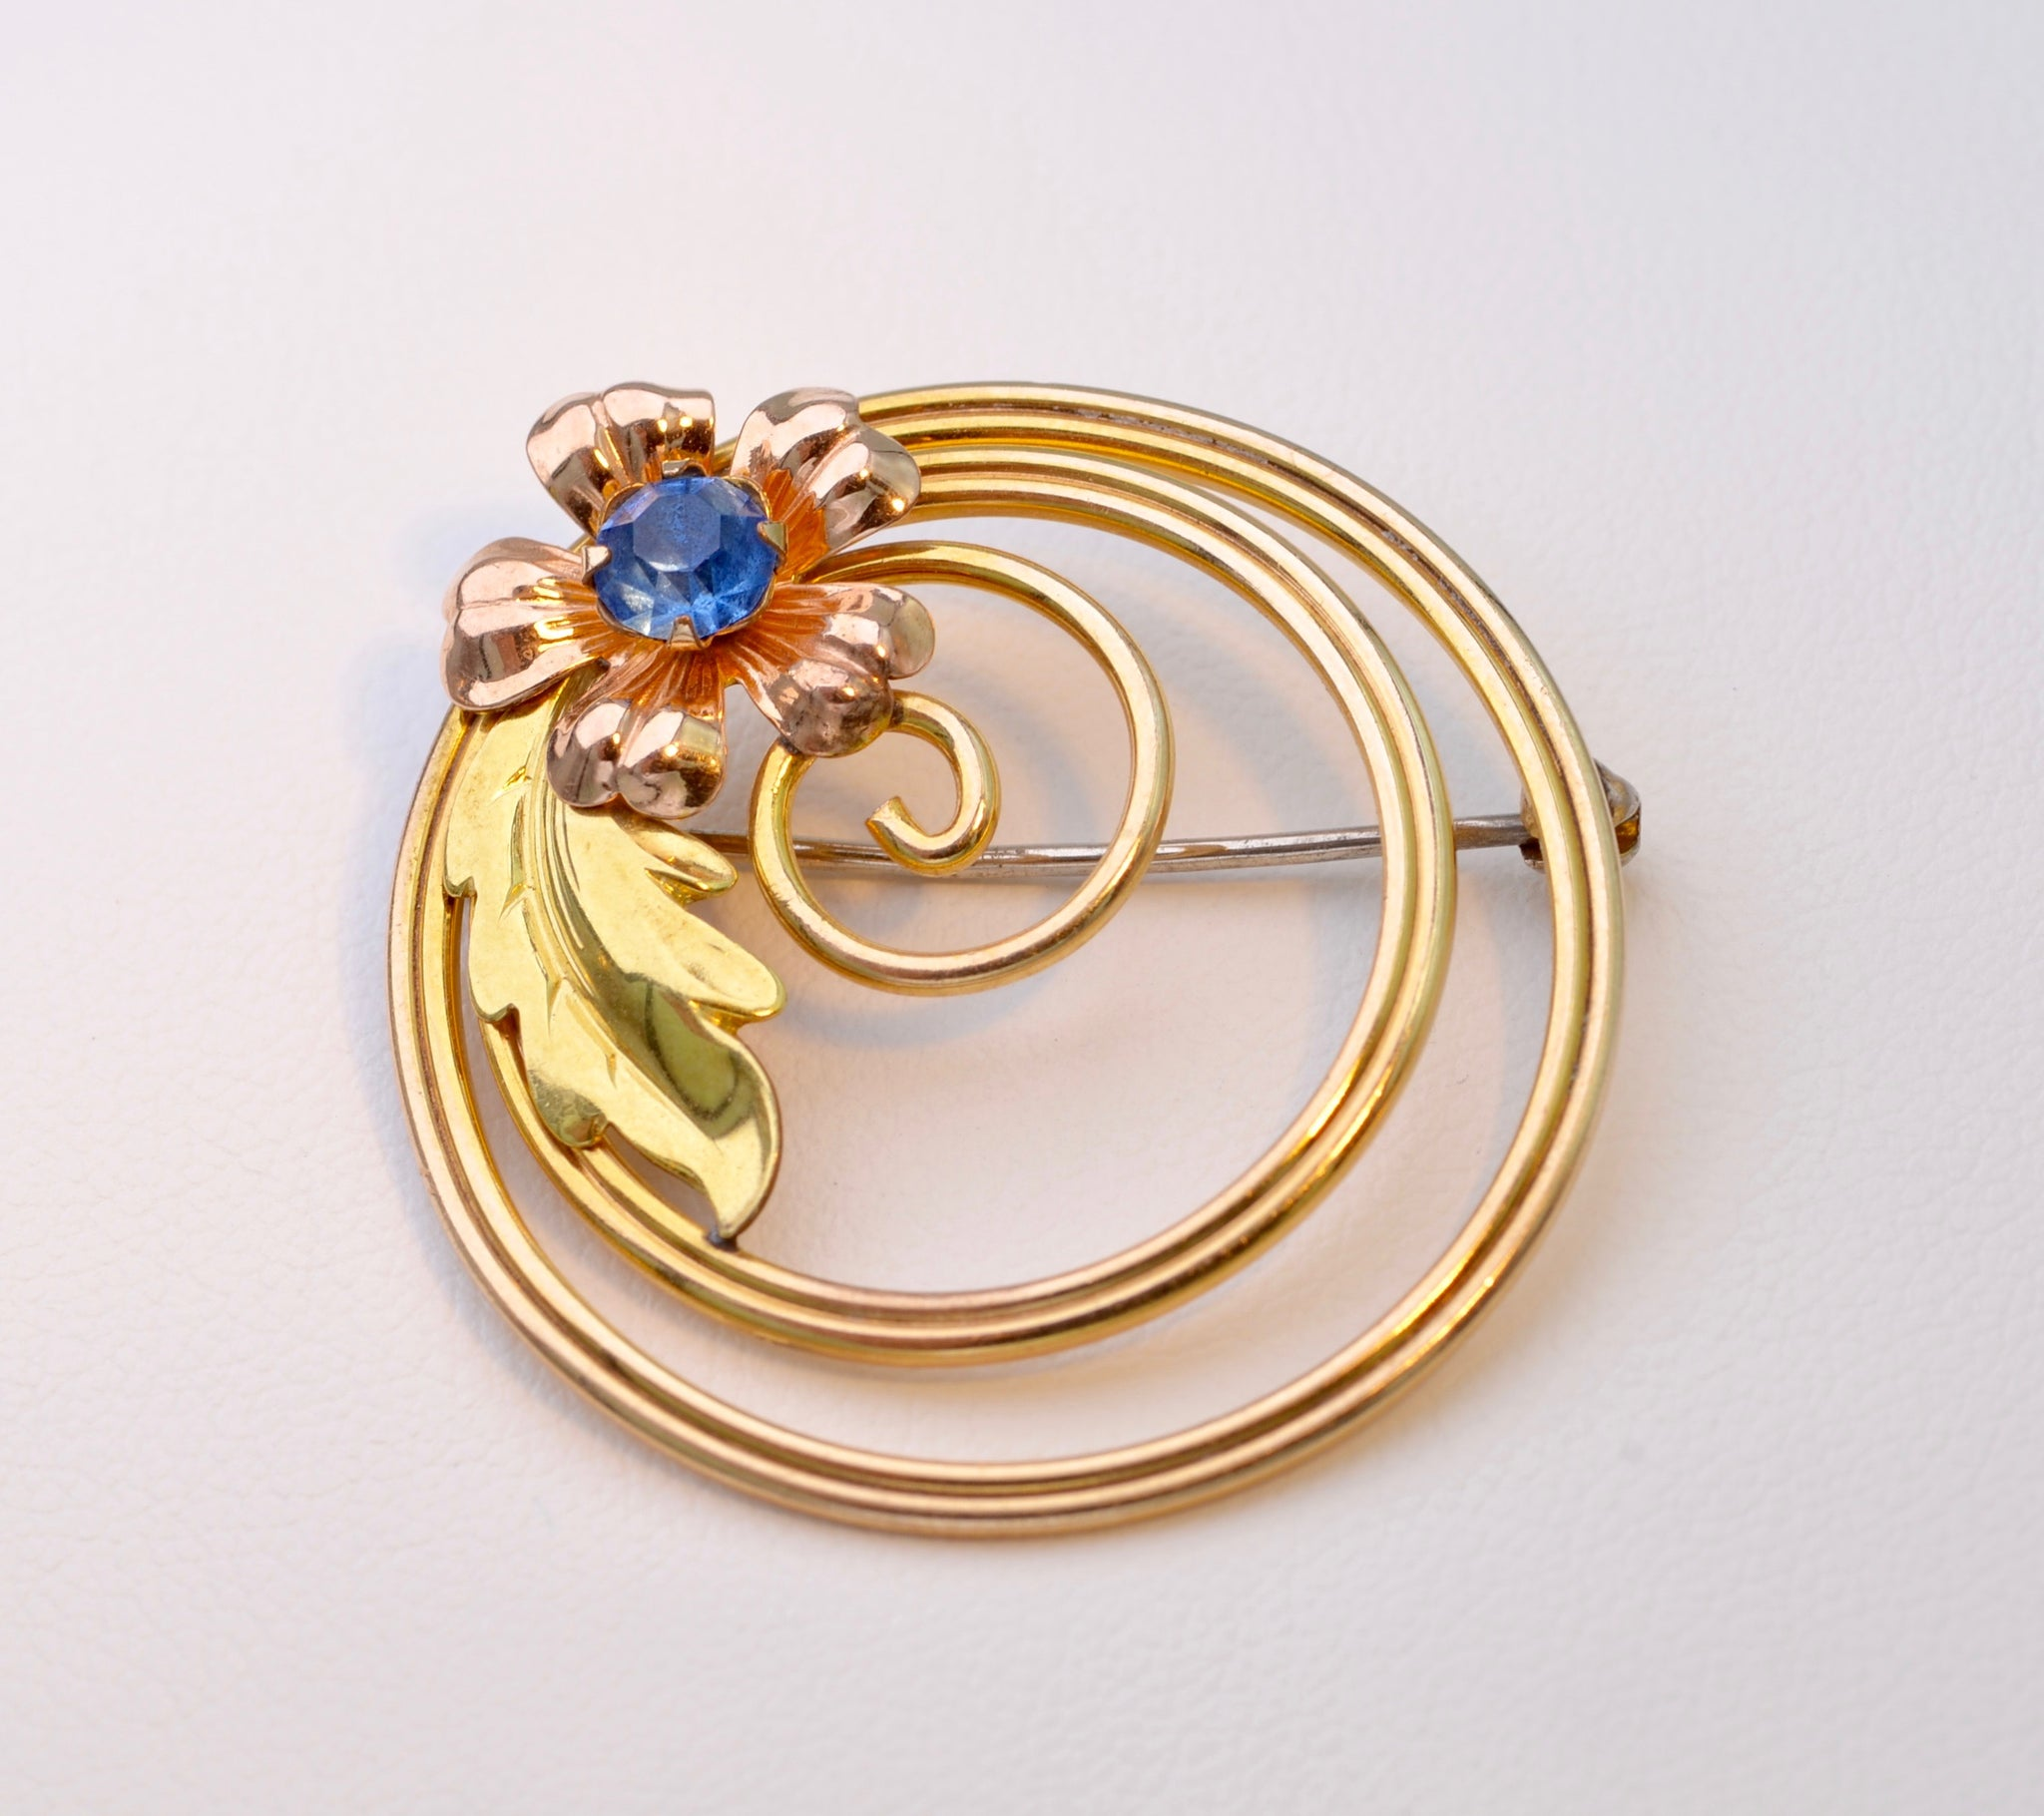 sapphire cduudro and diamond br brooch detail collection